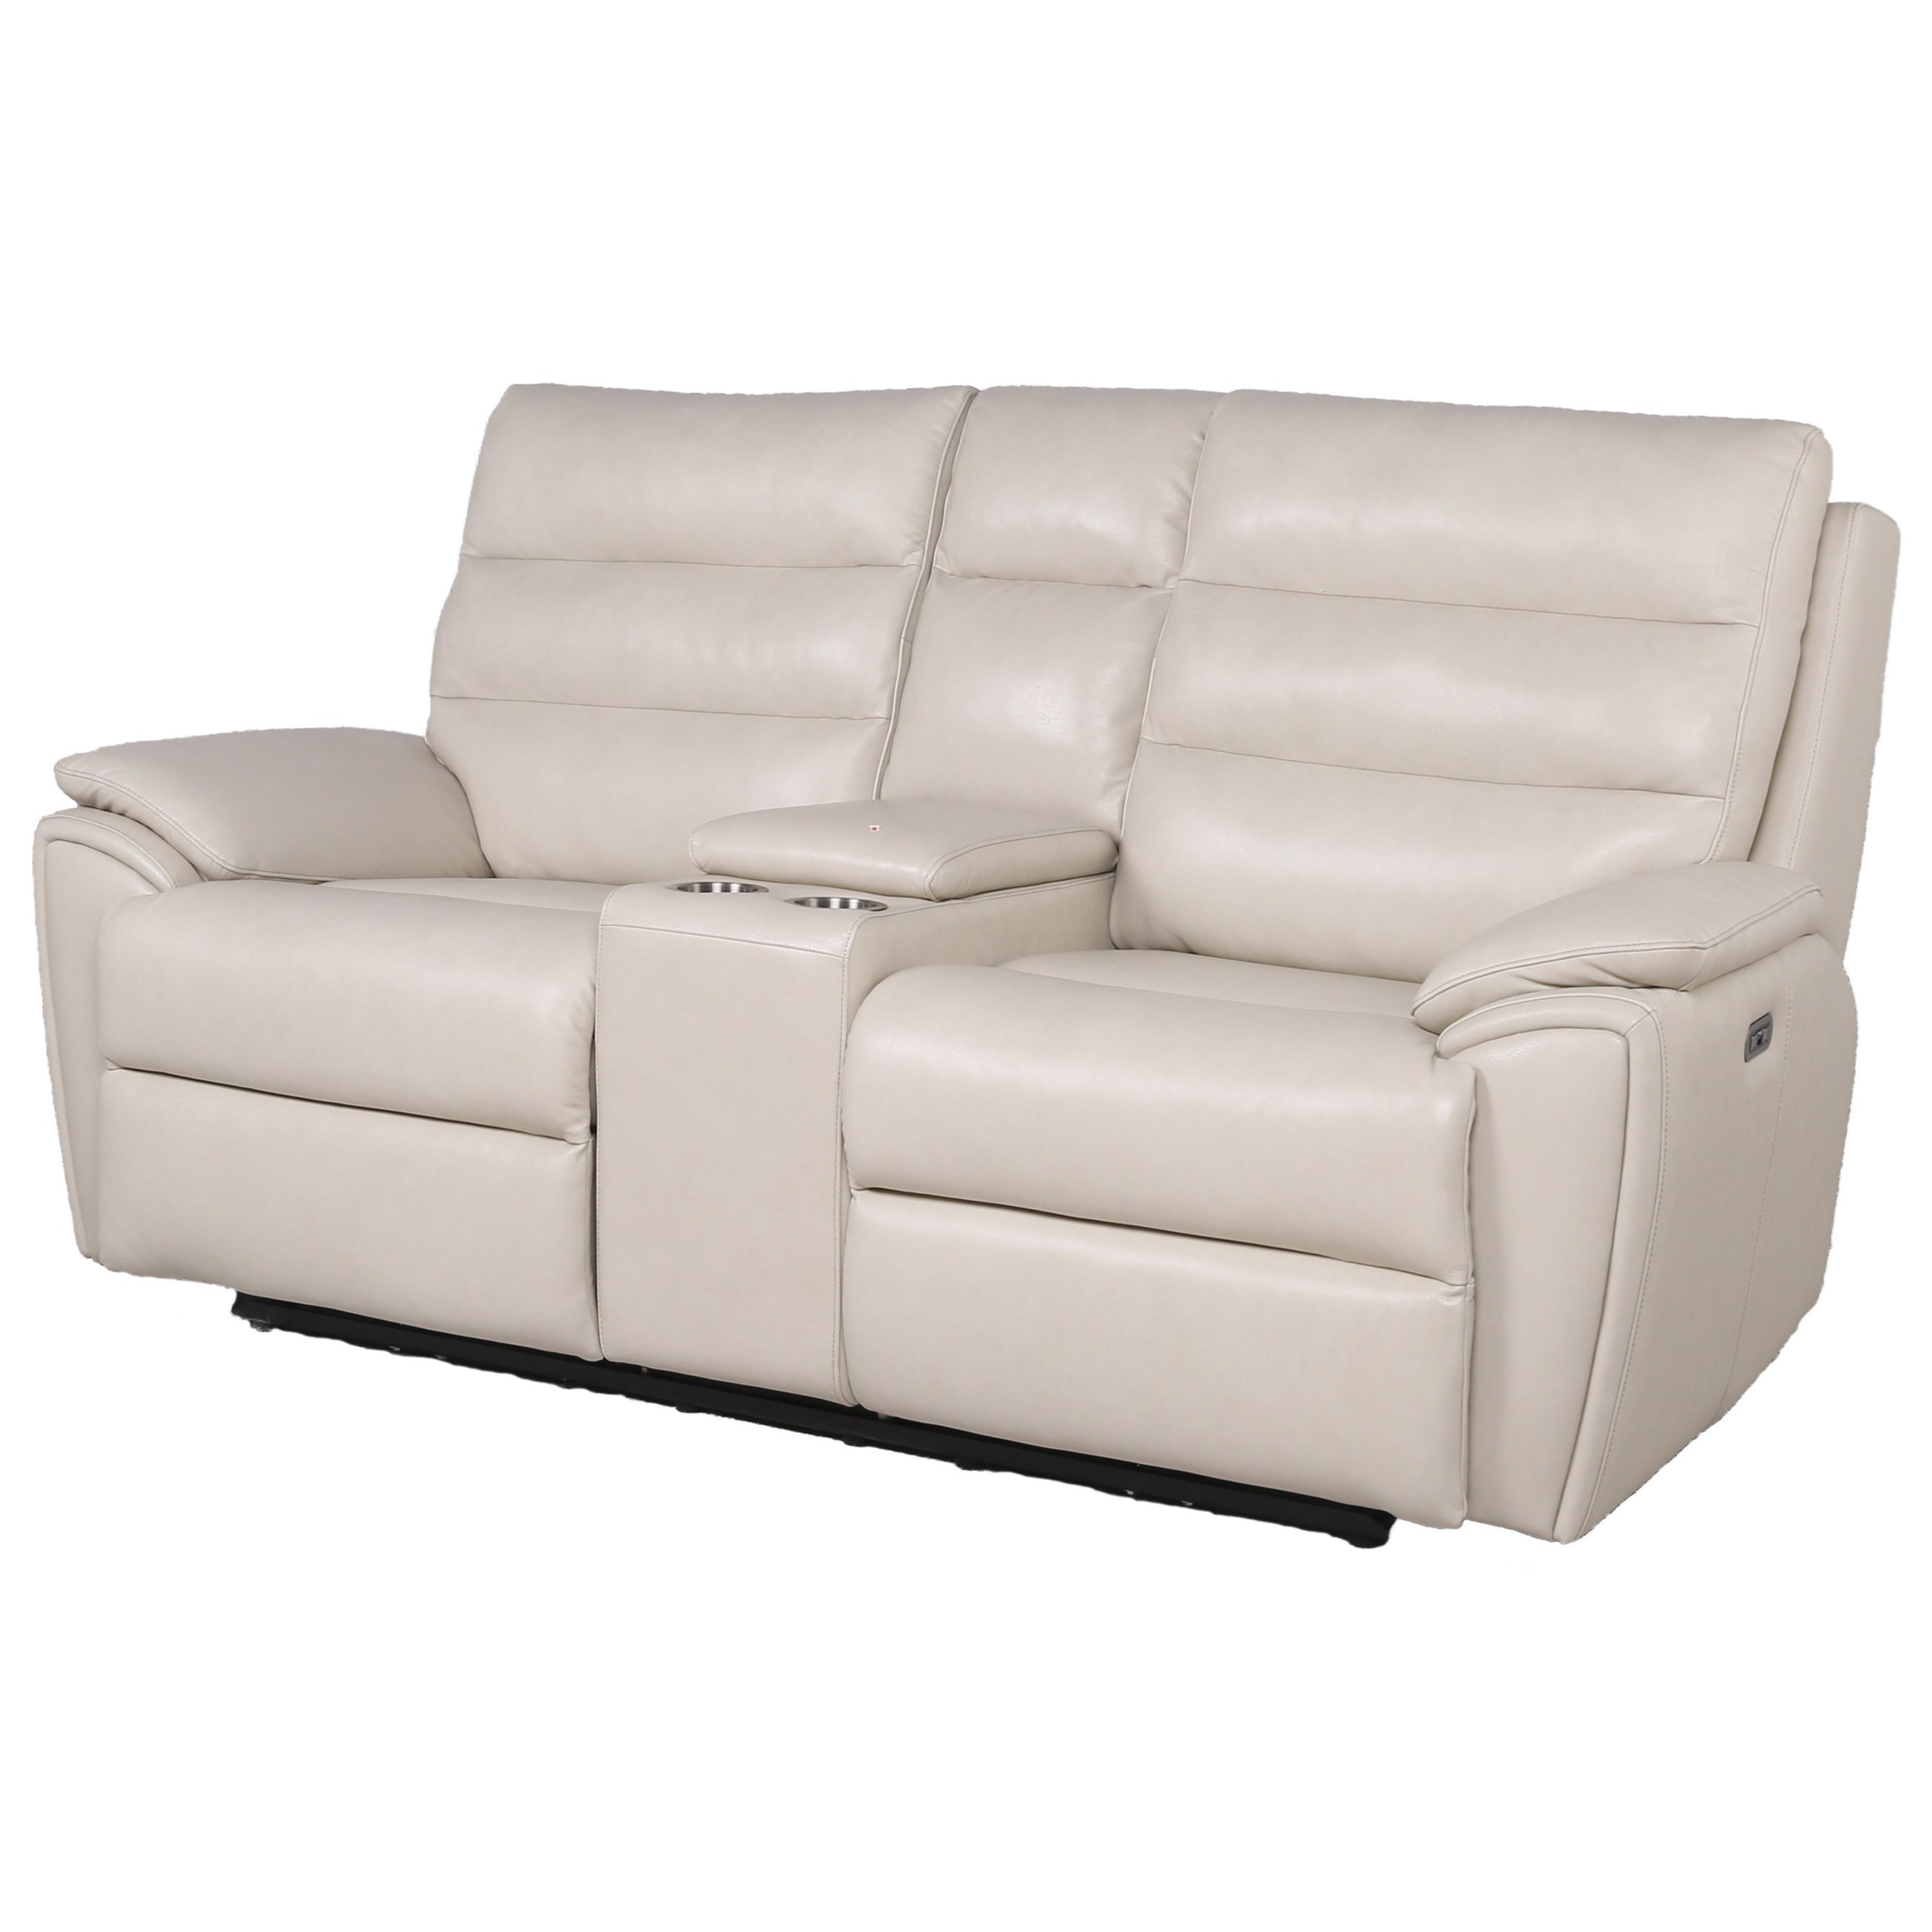 Duval Power Reclining Loveseat by Steve Silver at Northeast Factory Direct